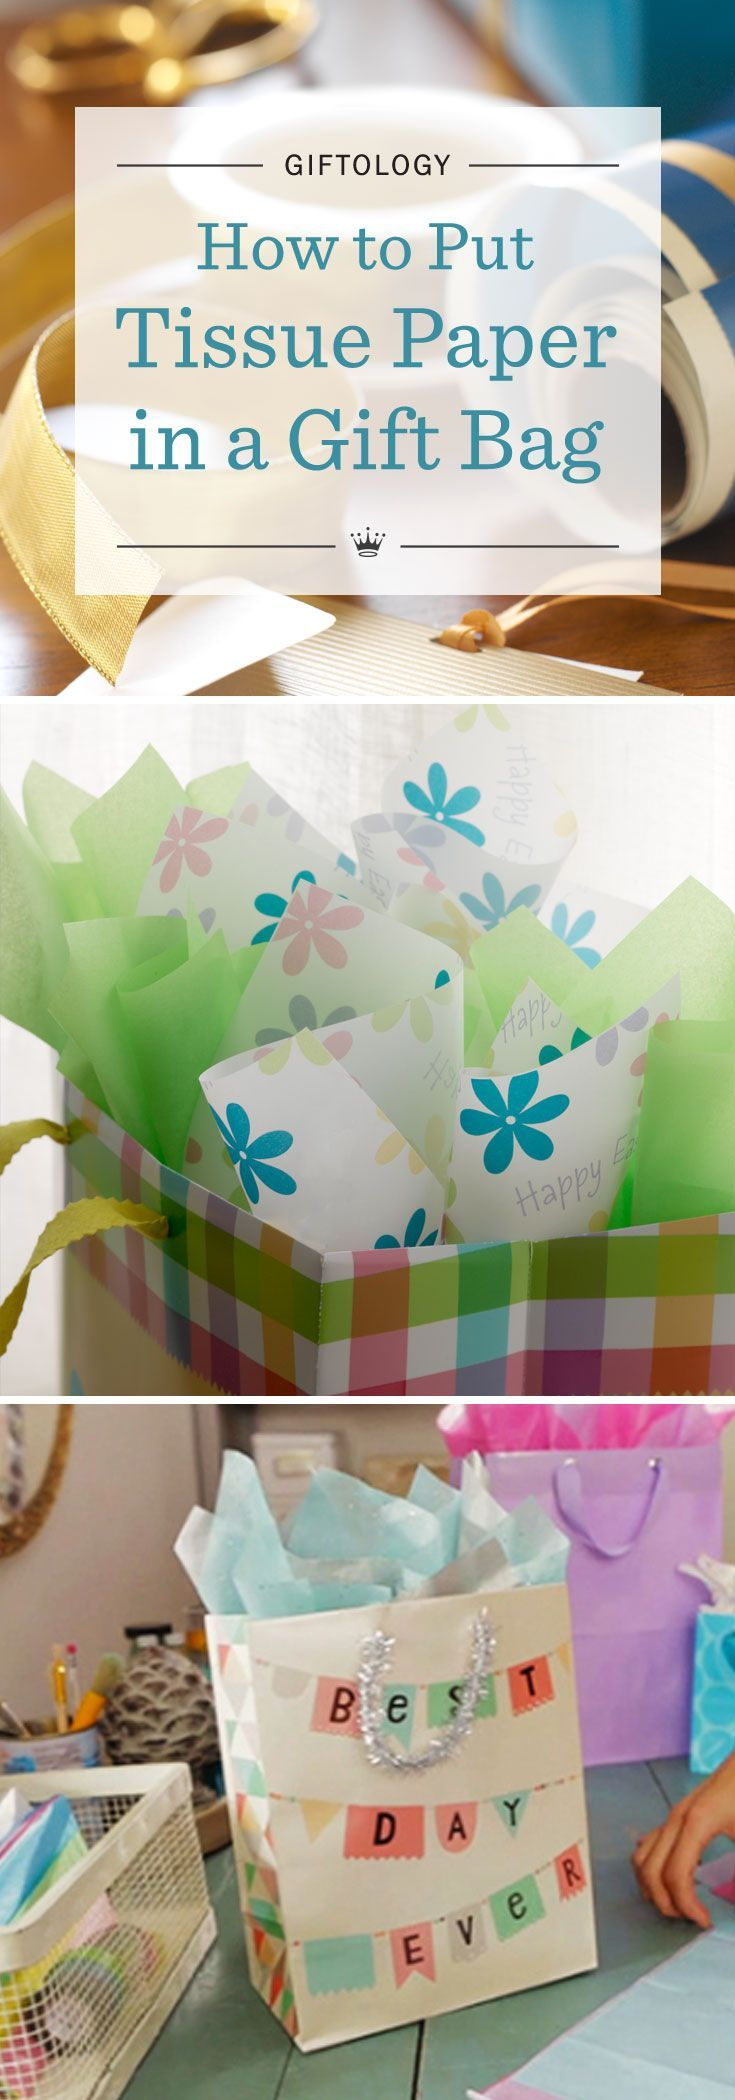 Giftology: How to Put Tissue Paper in a Gift Bag | Learn the art of gift wrapping from the experts at Hallmark. Watch our fun video tutorial to learn how to put tissue paper in a gift bag and make it look great (the trick is in the twist!).